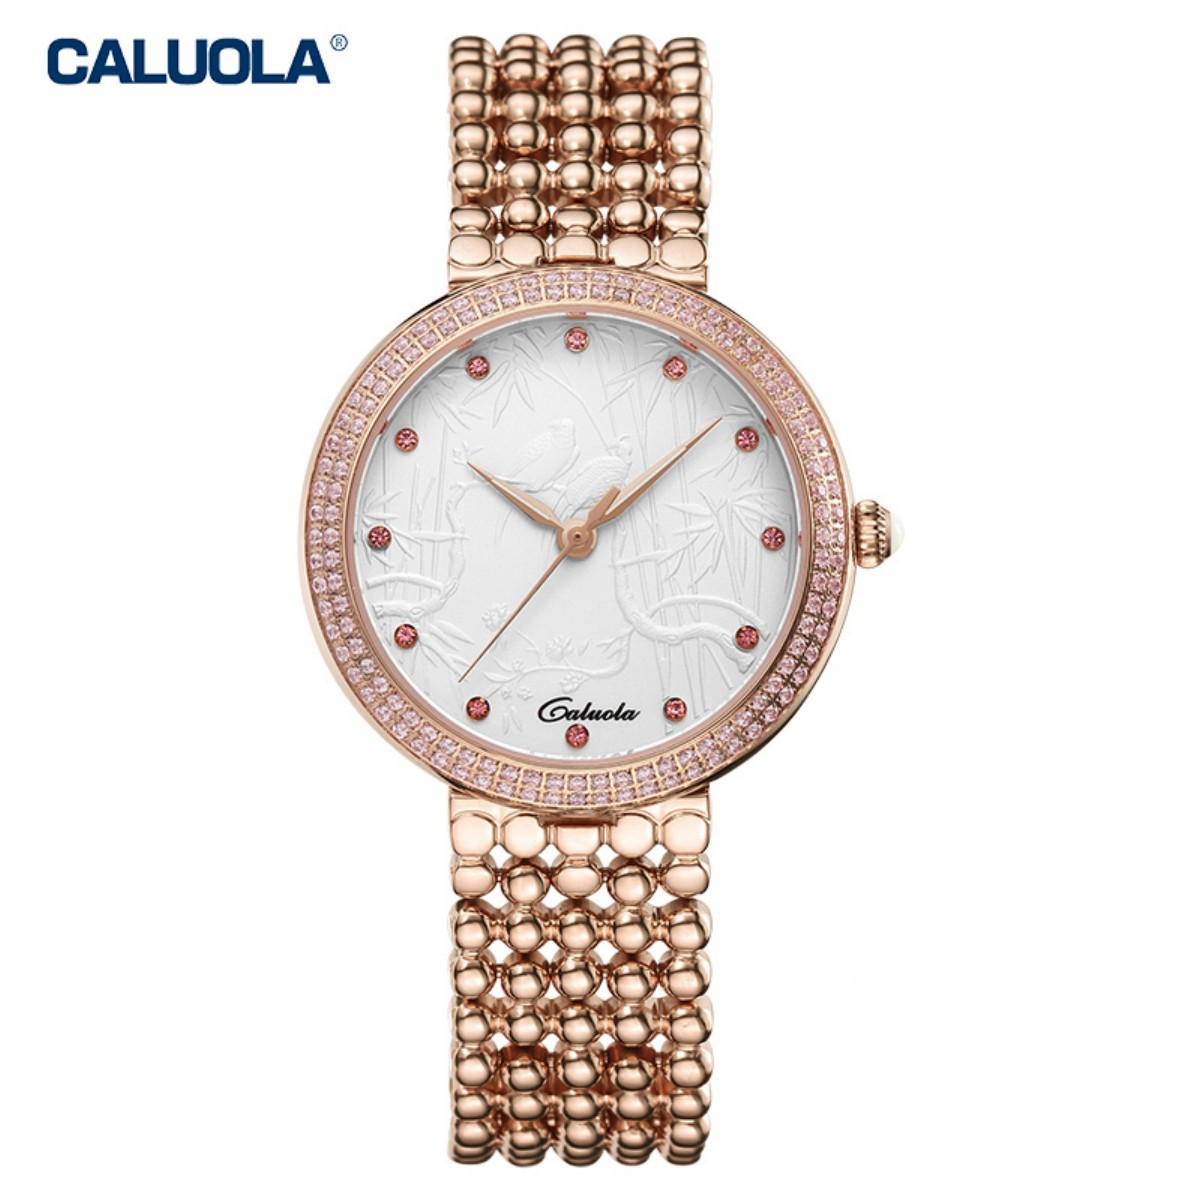 Caluola Women Watch 35mm Rose Gold 1145